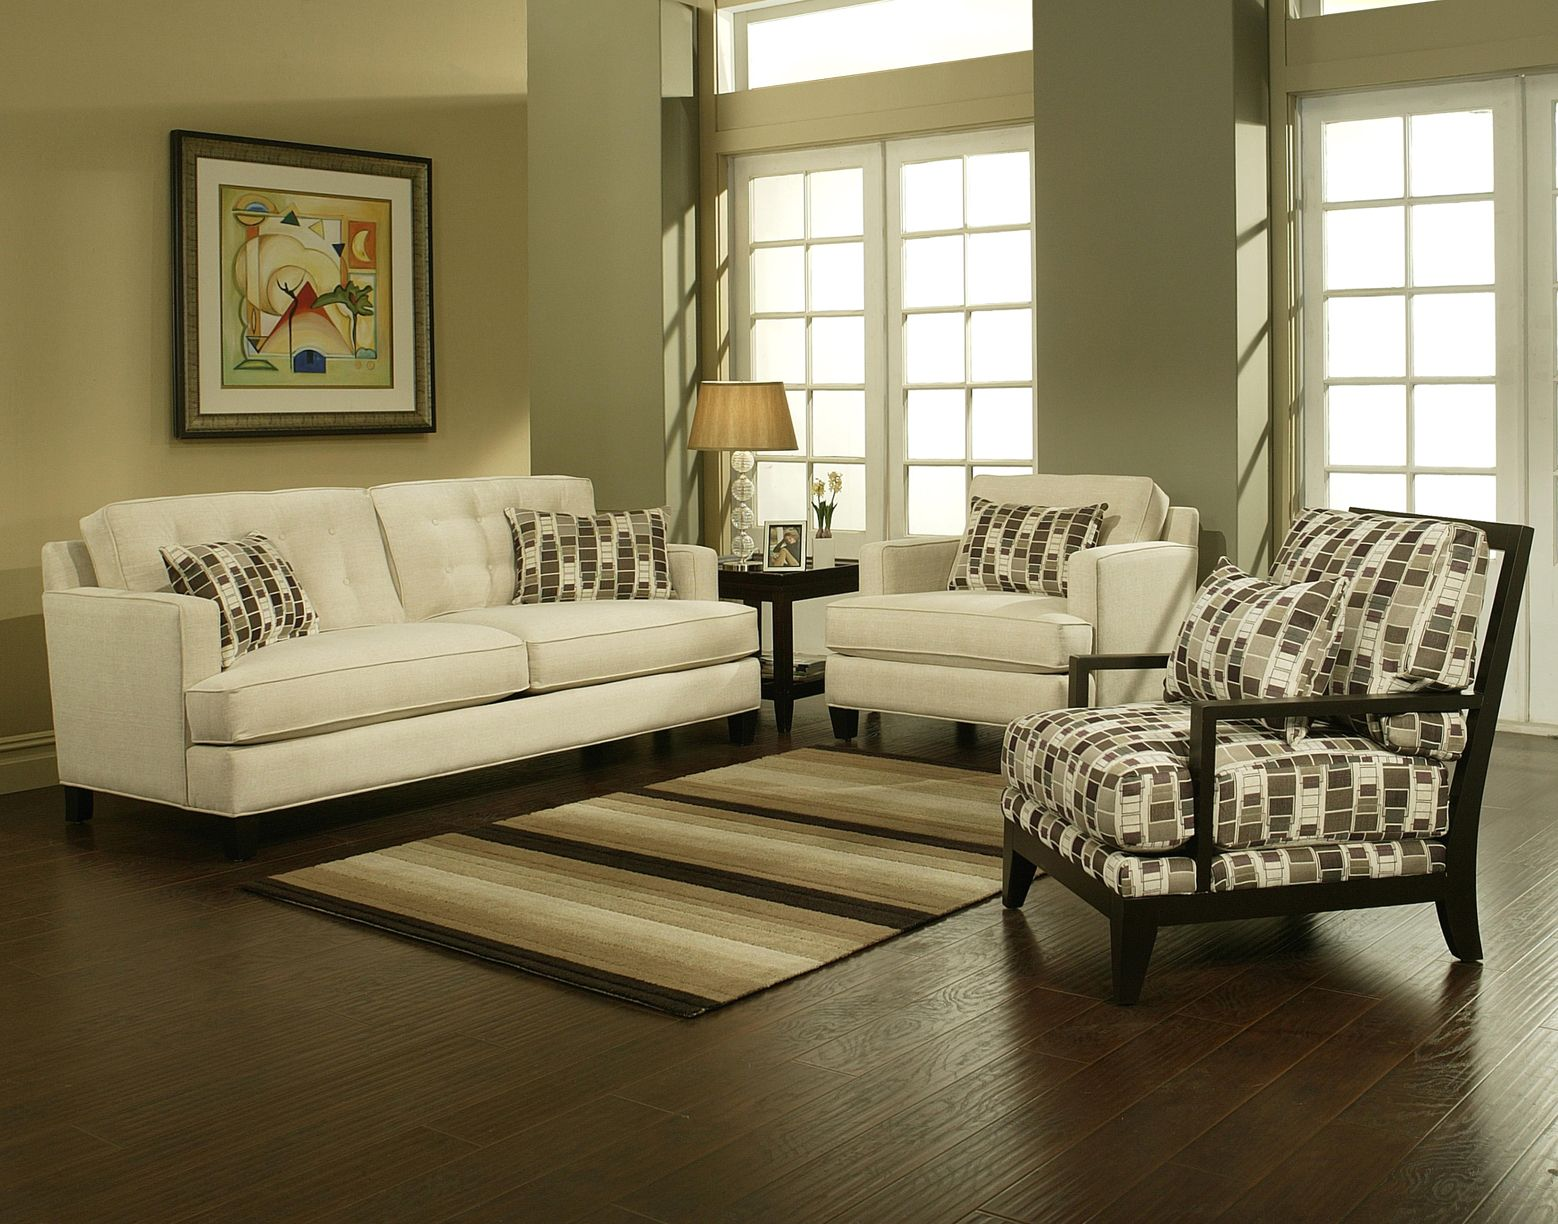 Modern Living Room Accent Chairs Bono Sofa Loveseat Chair Ottoman Accent Chair Available